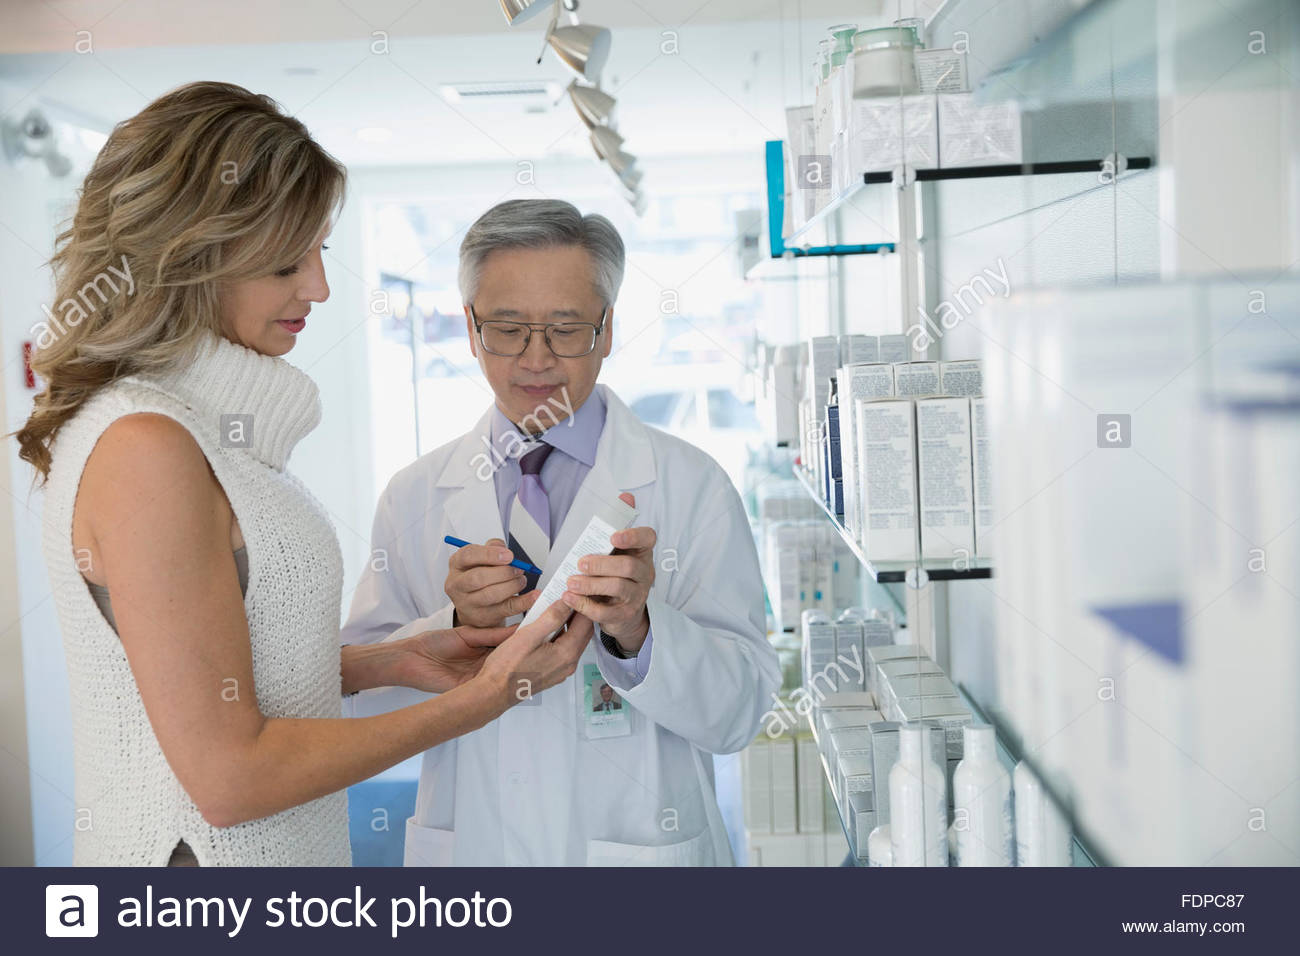 Esthetician discussing product with patient in lobby - Stock Image